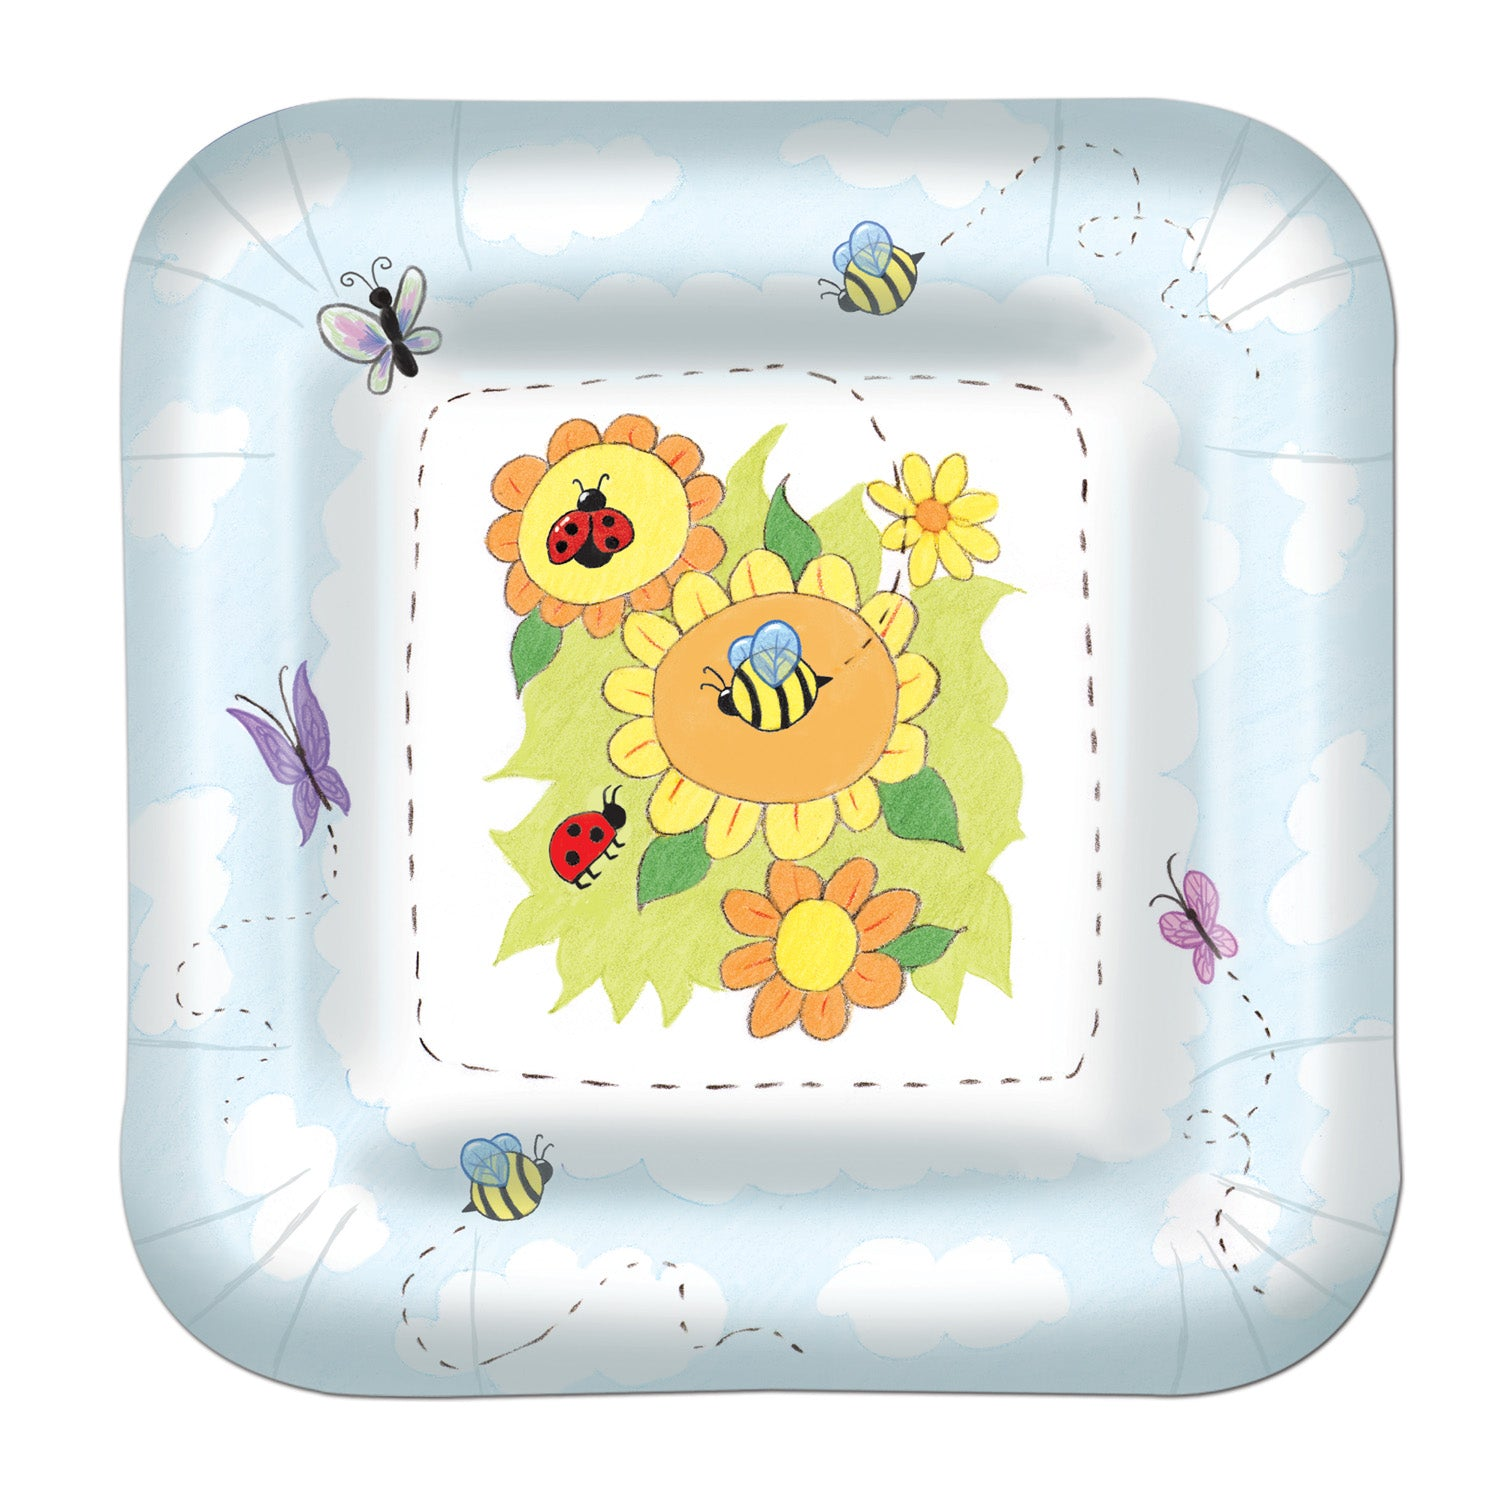 Garden Plates (8/Pkg) by Beistle - Baby Shower Theme Decorations